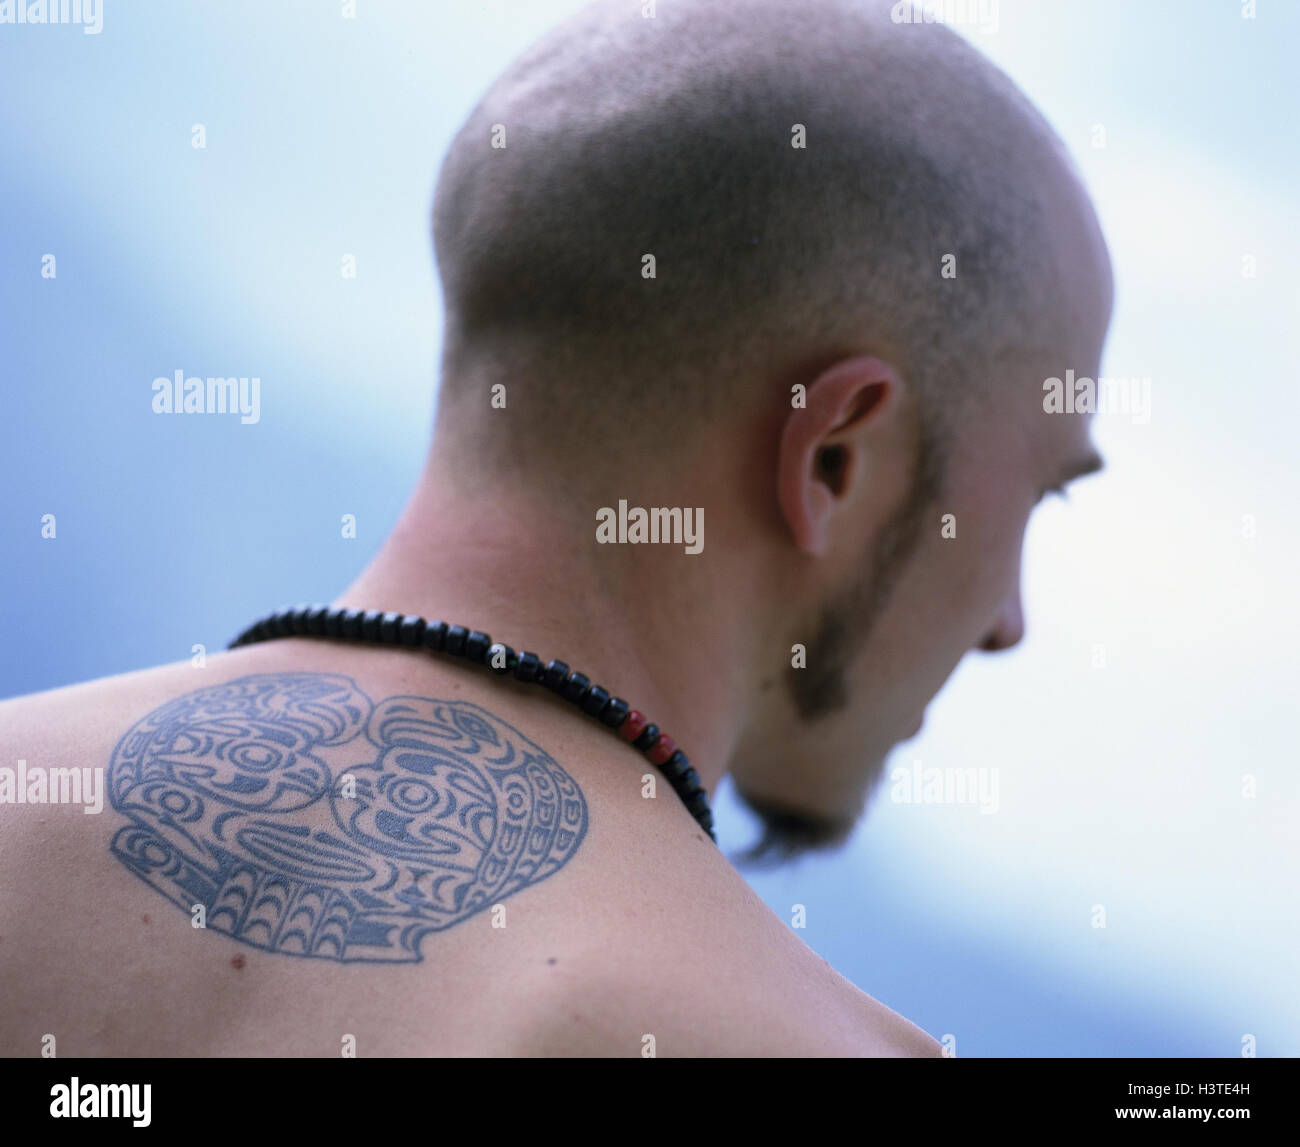 Man Shoulder Range Tattoo Back View Lifestyle Beard